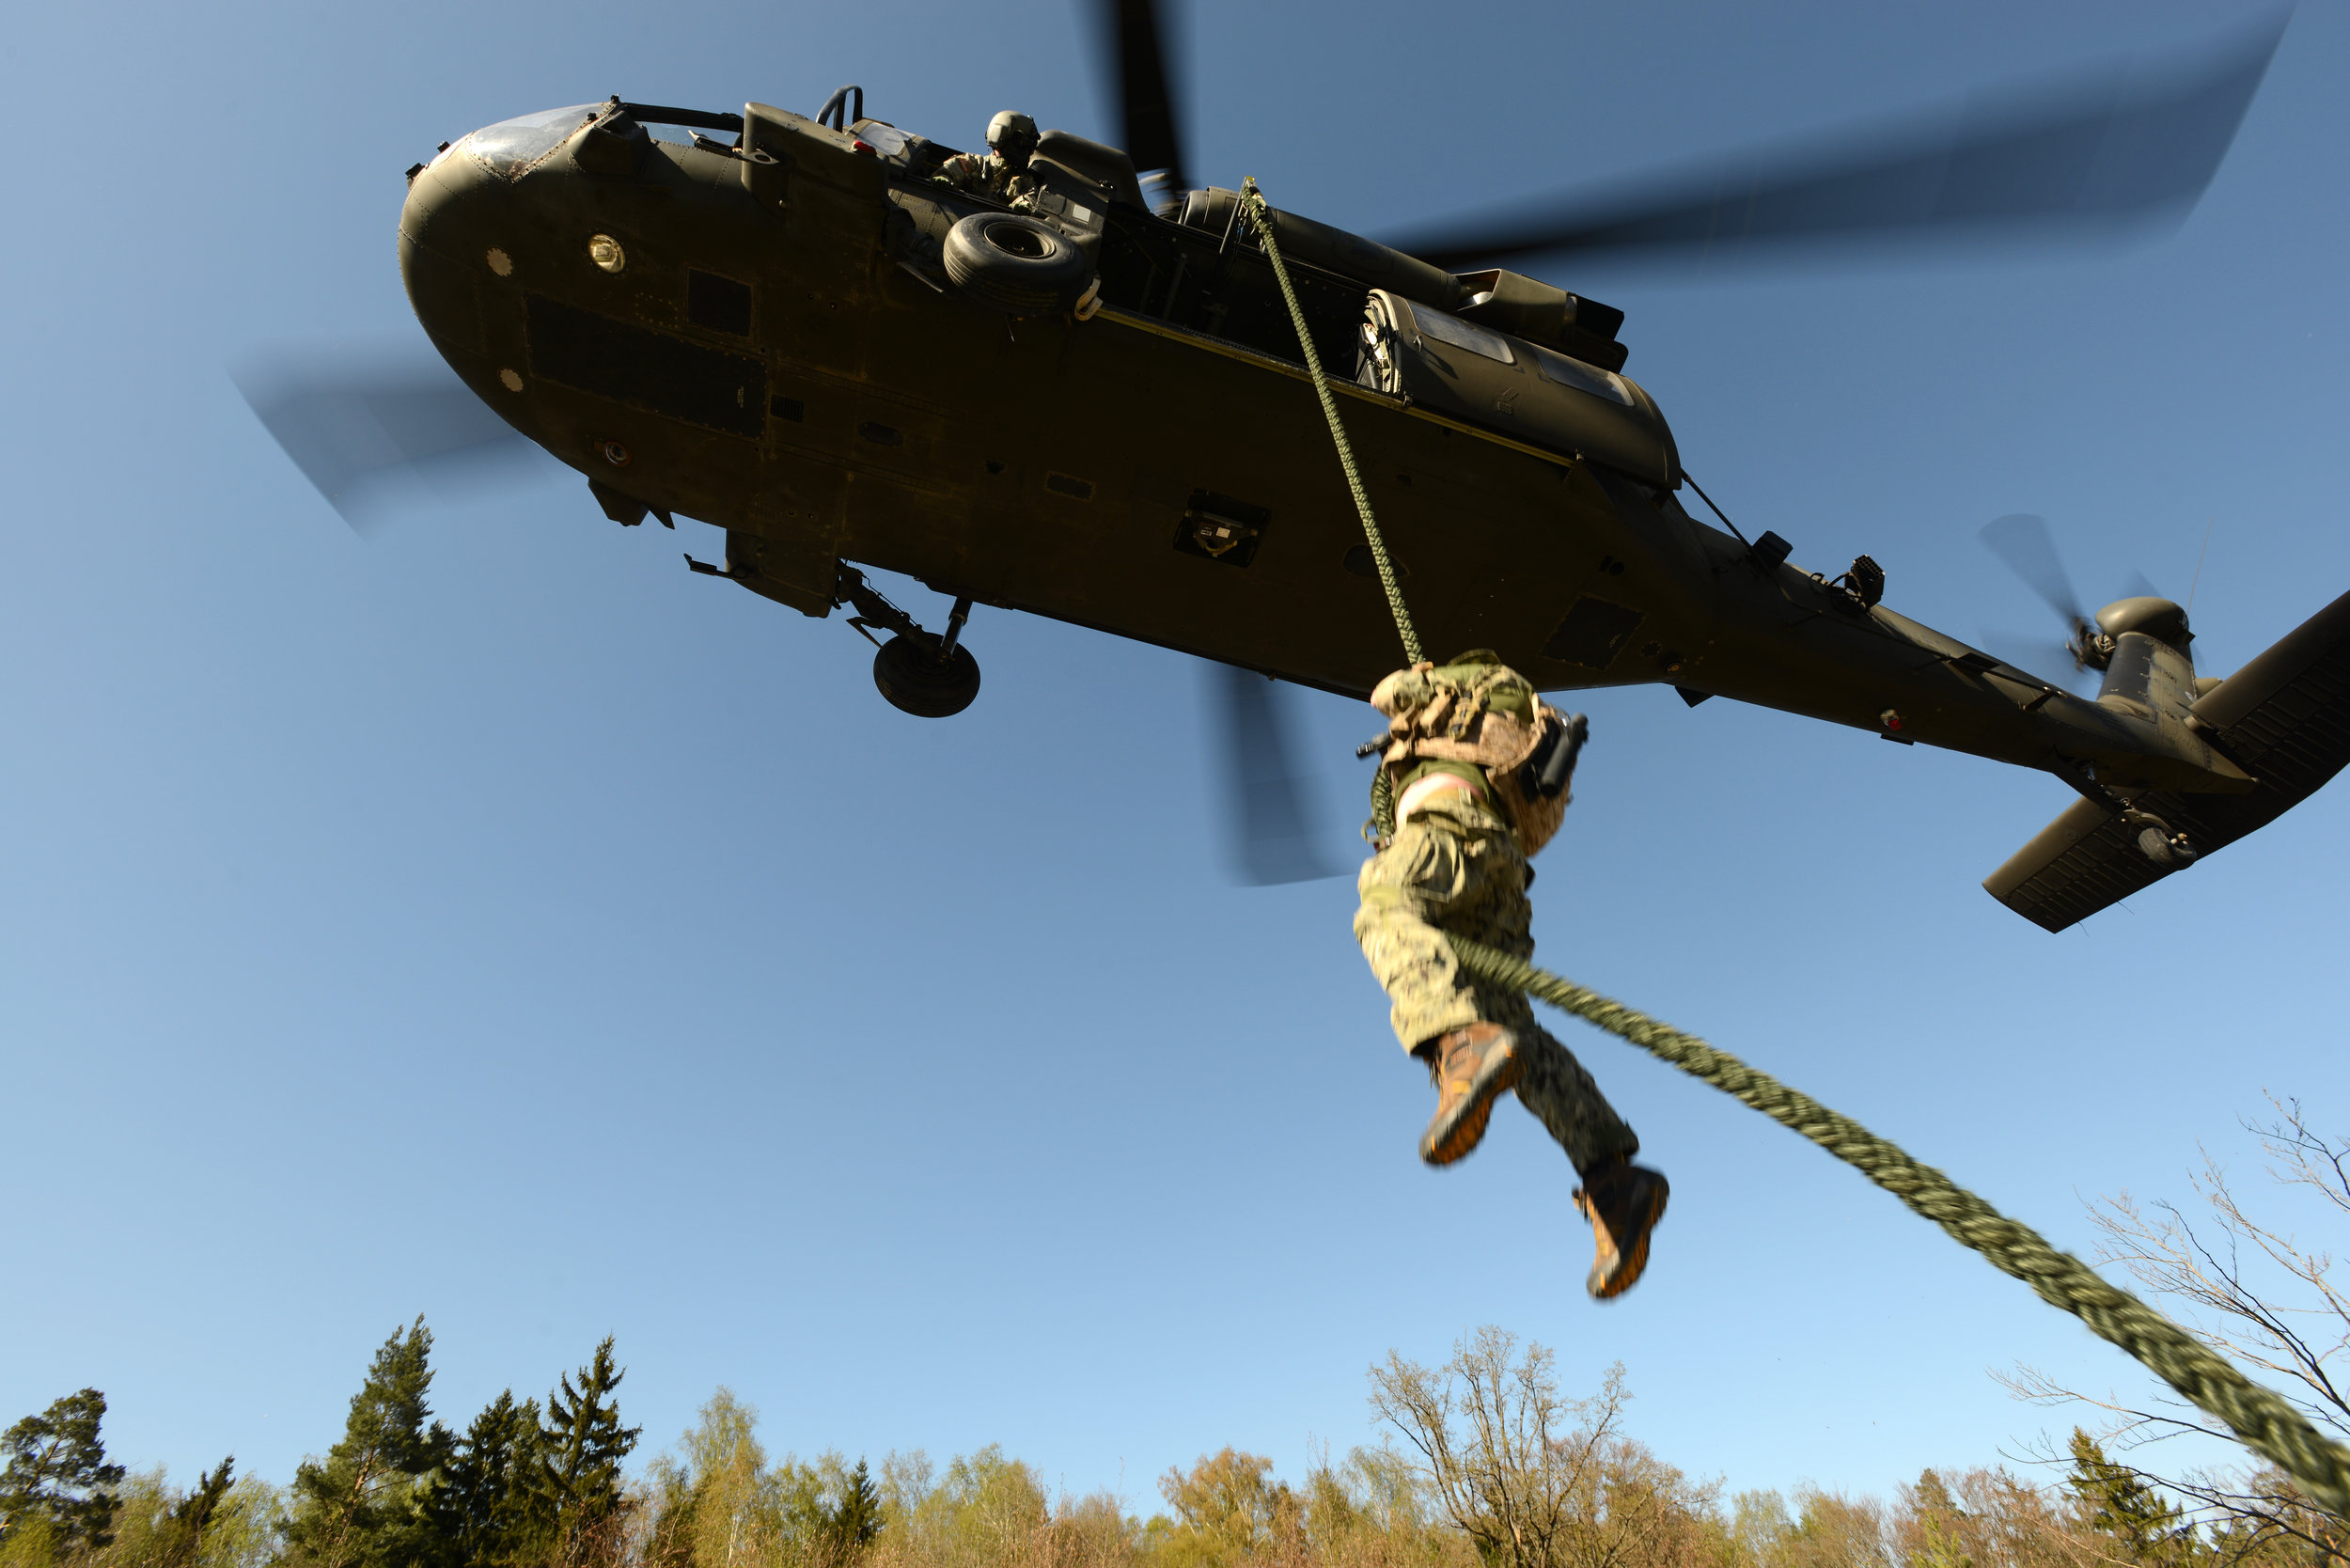 Navy SEAL rappelling down from helicopter